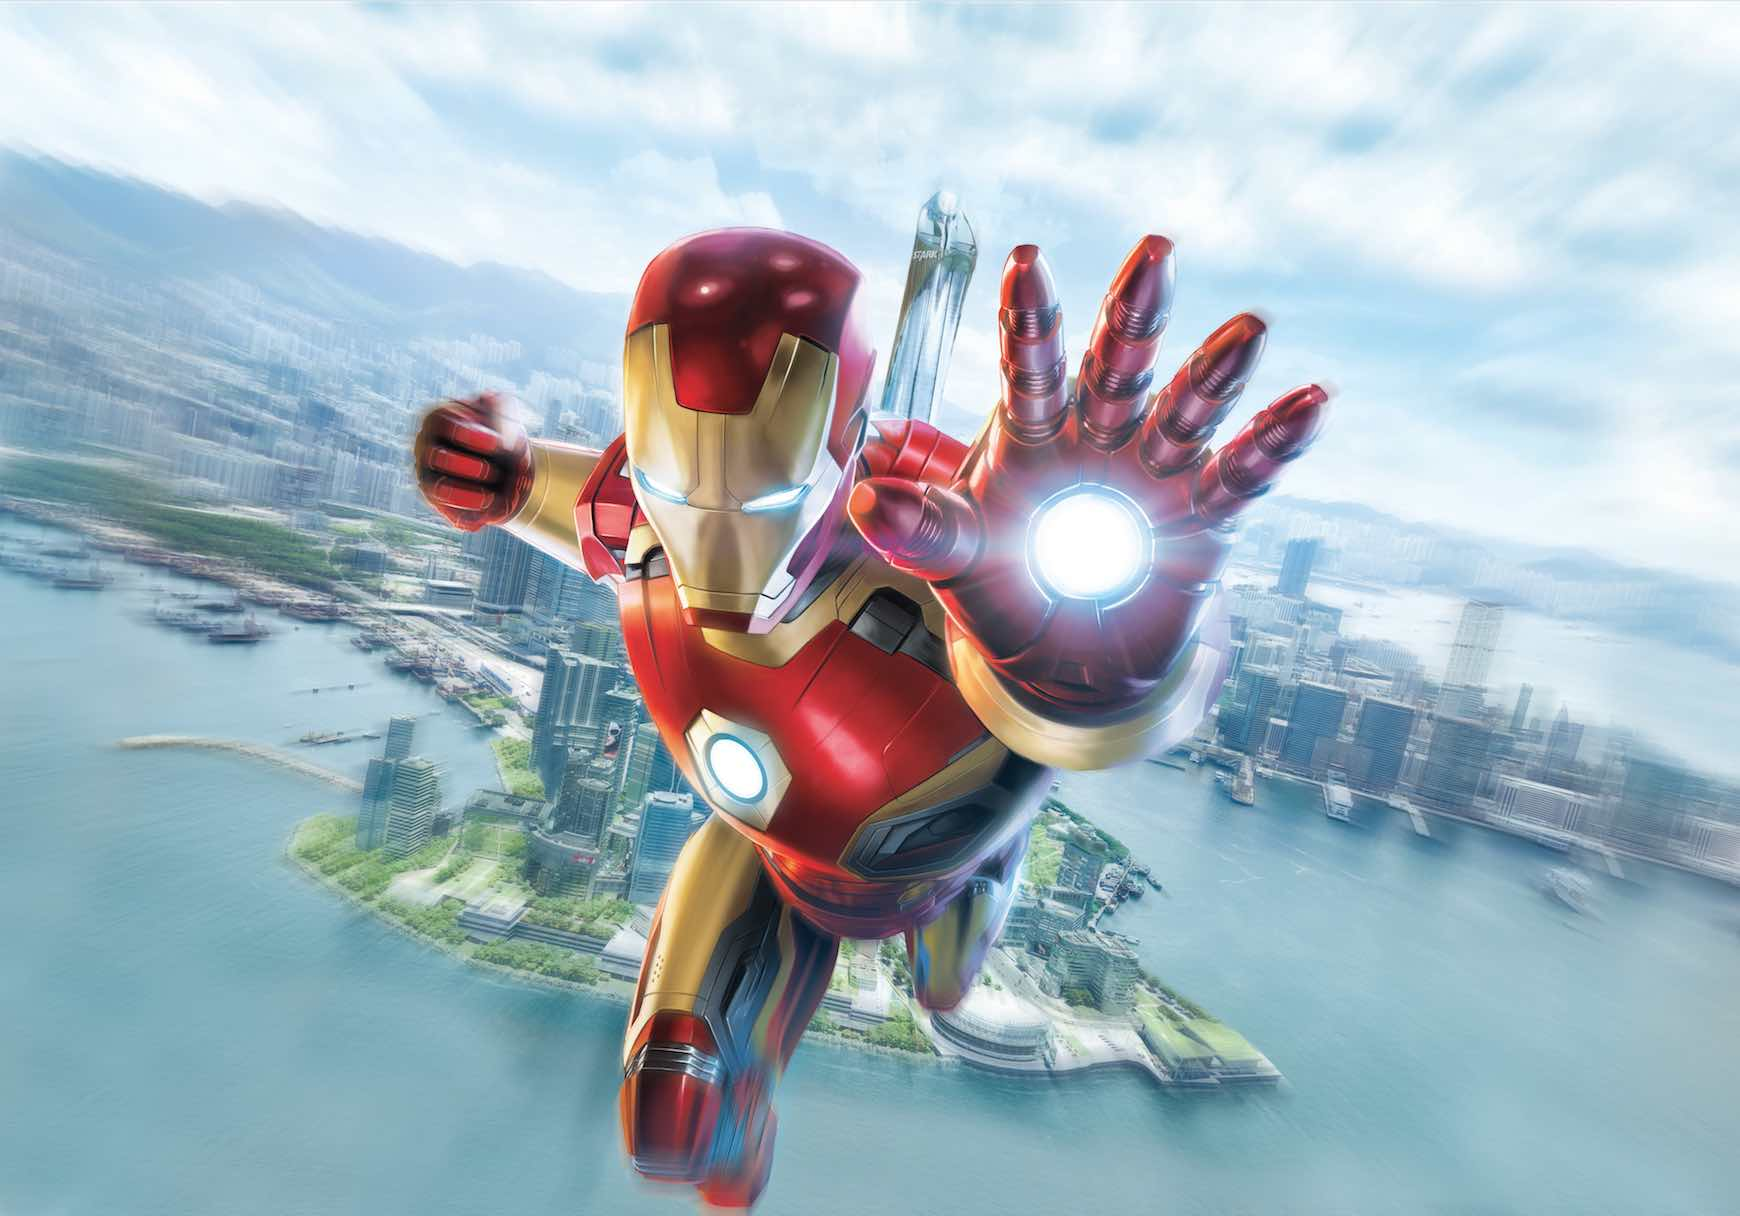 hong-kong-disneyland-iron-man-experience-against-hk-skyline-aspirantsg